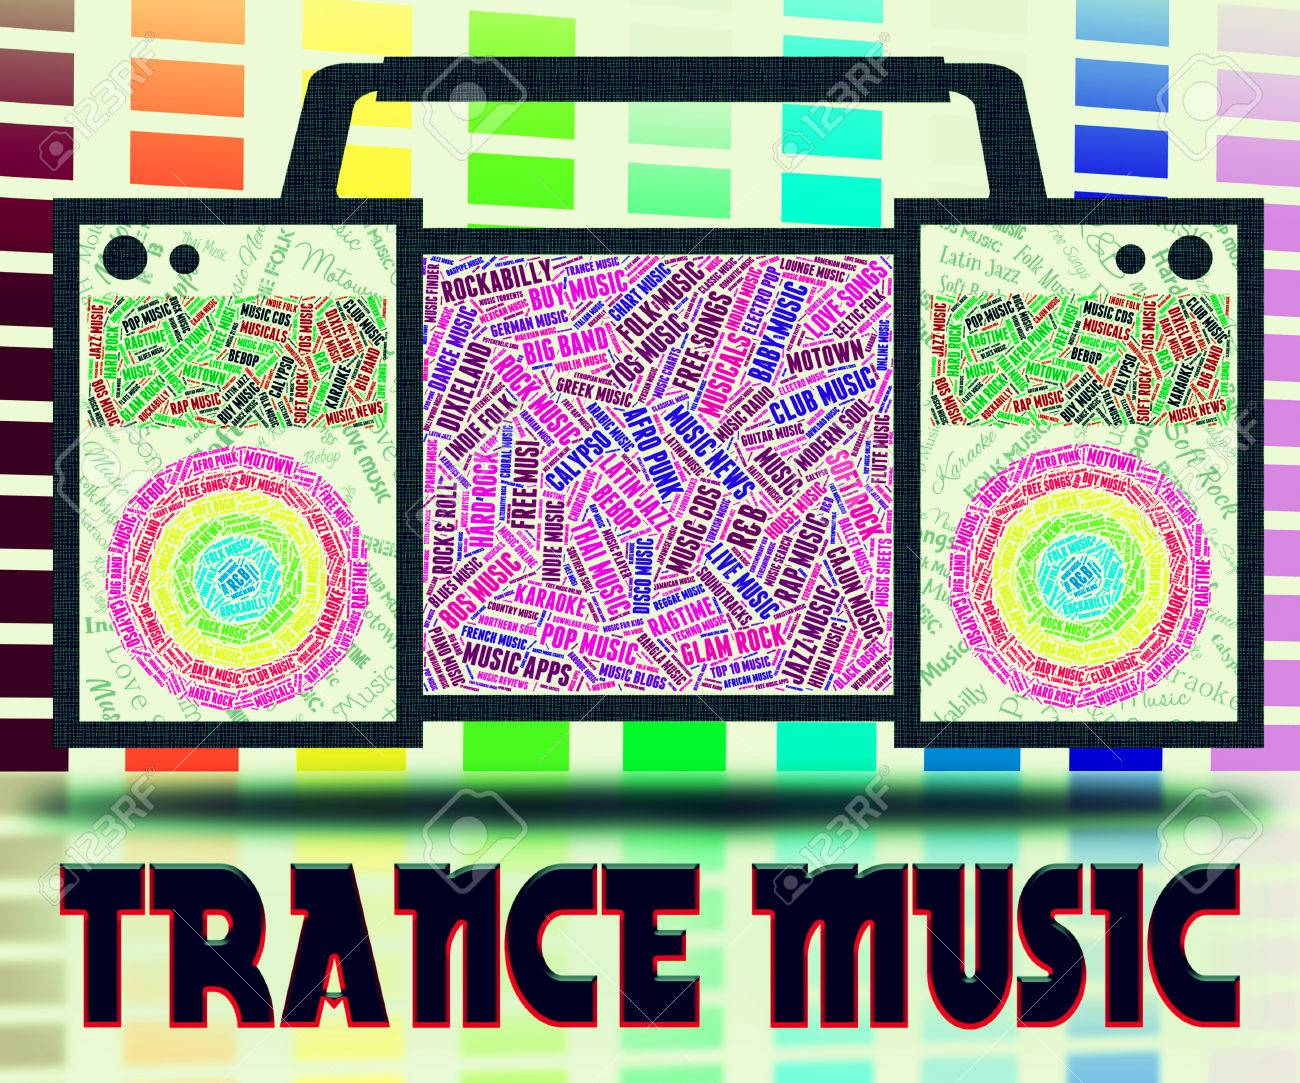 Trance Music Meaning Sound Tracks And Melodies